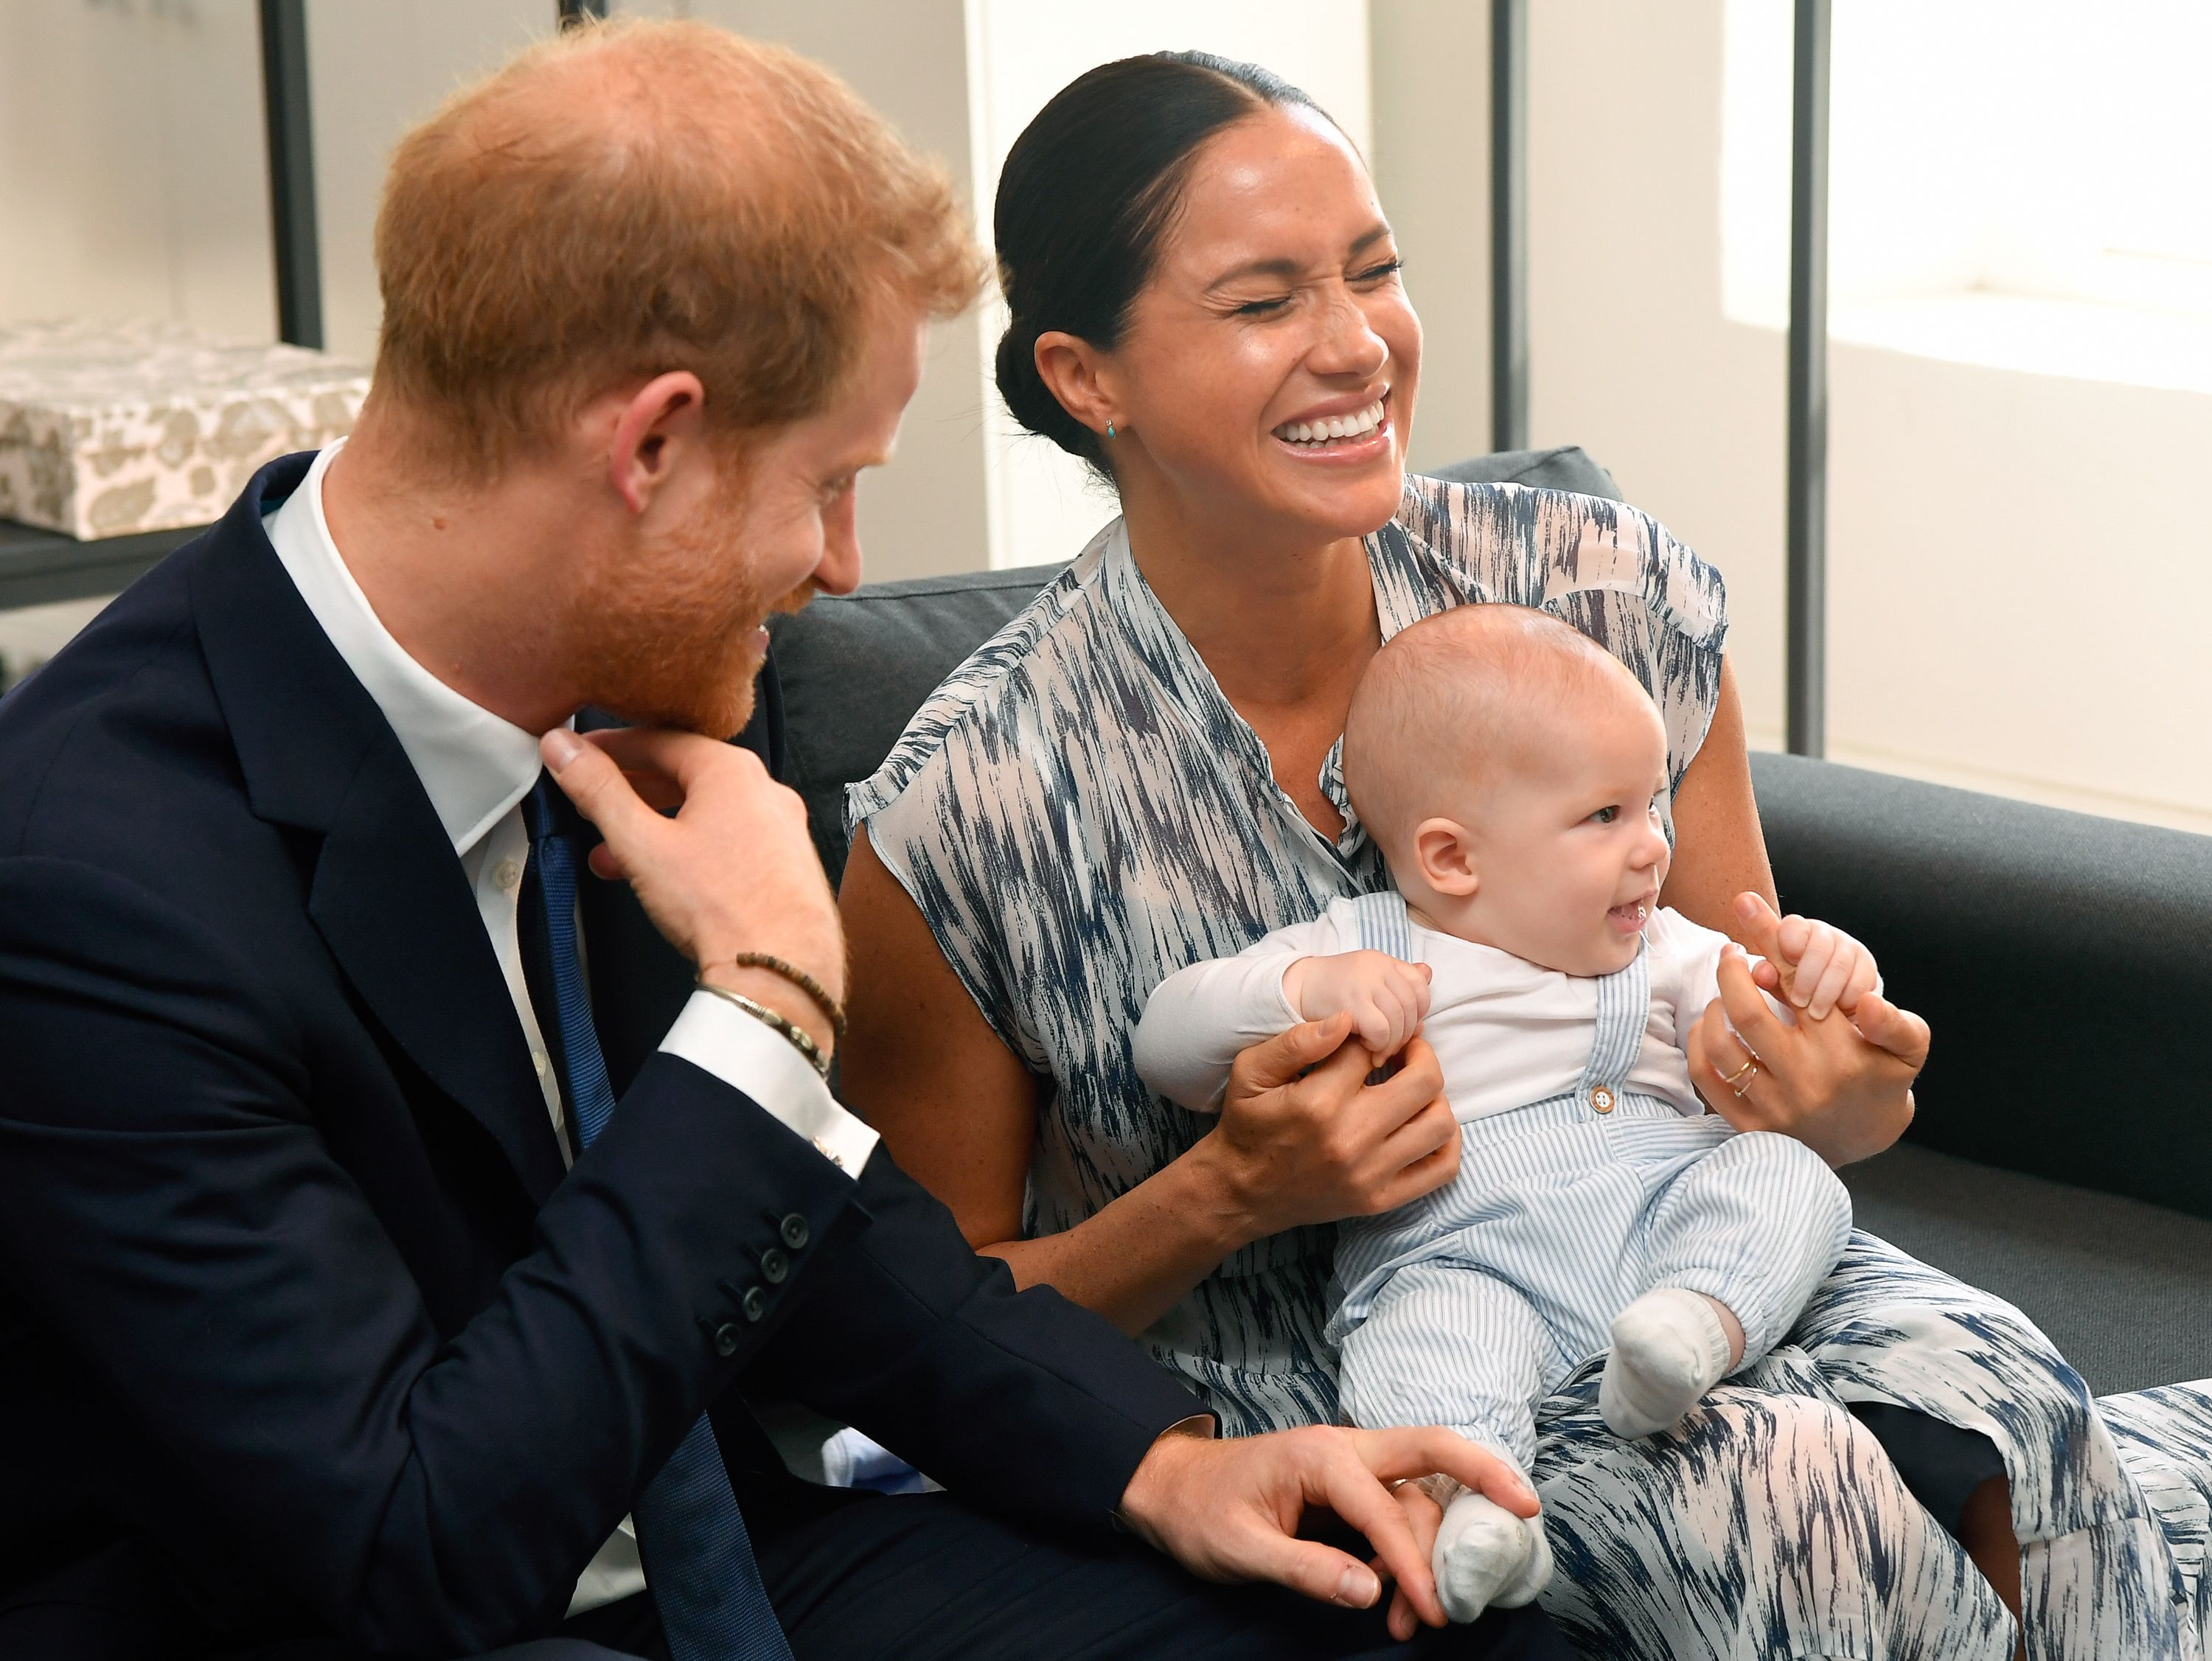 15+ Prince Harry And Meghan Markle Children's Titles